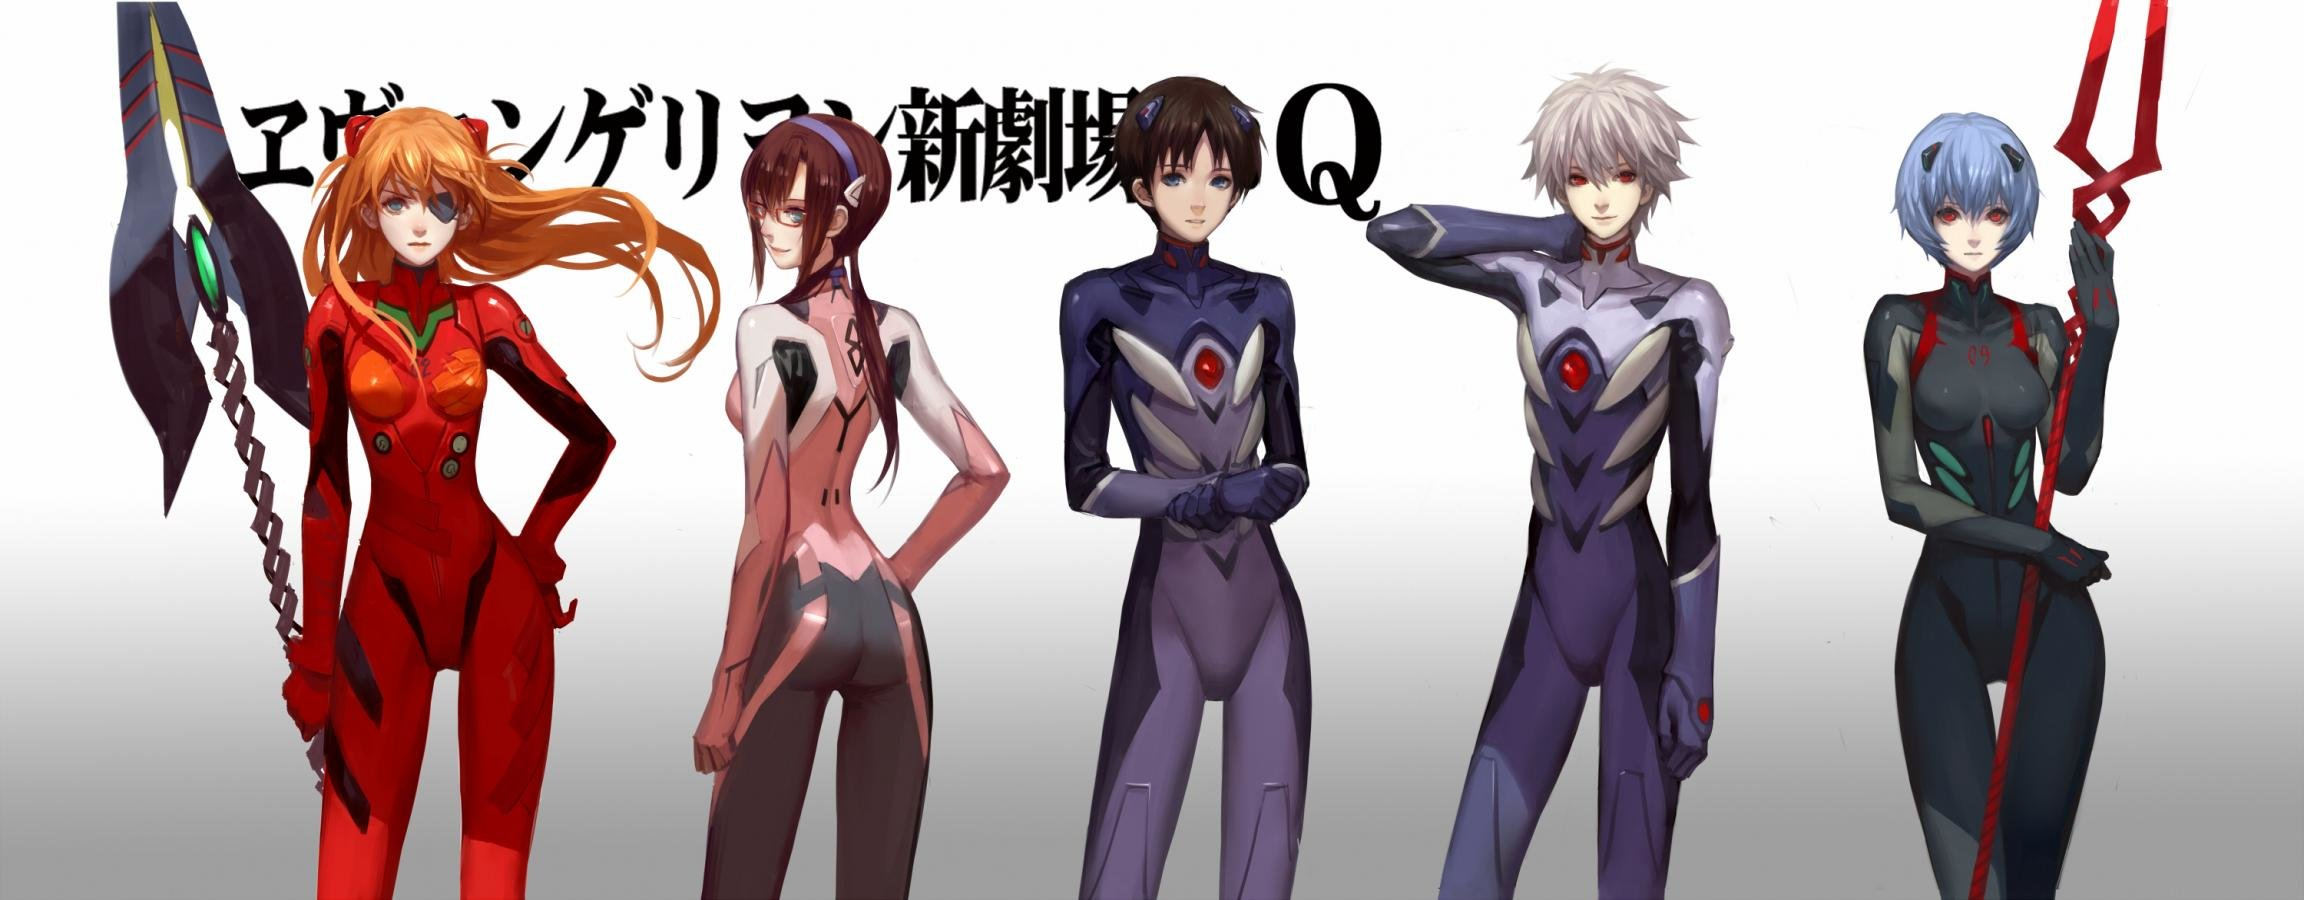 Free Download Neon Genesis Evangelion Wallpaper ID215272 Dual Monitor 2304x900 For PC